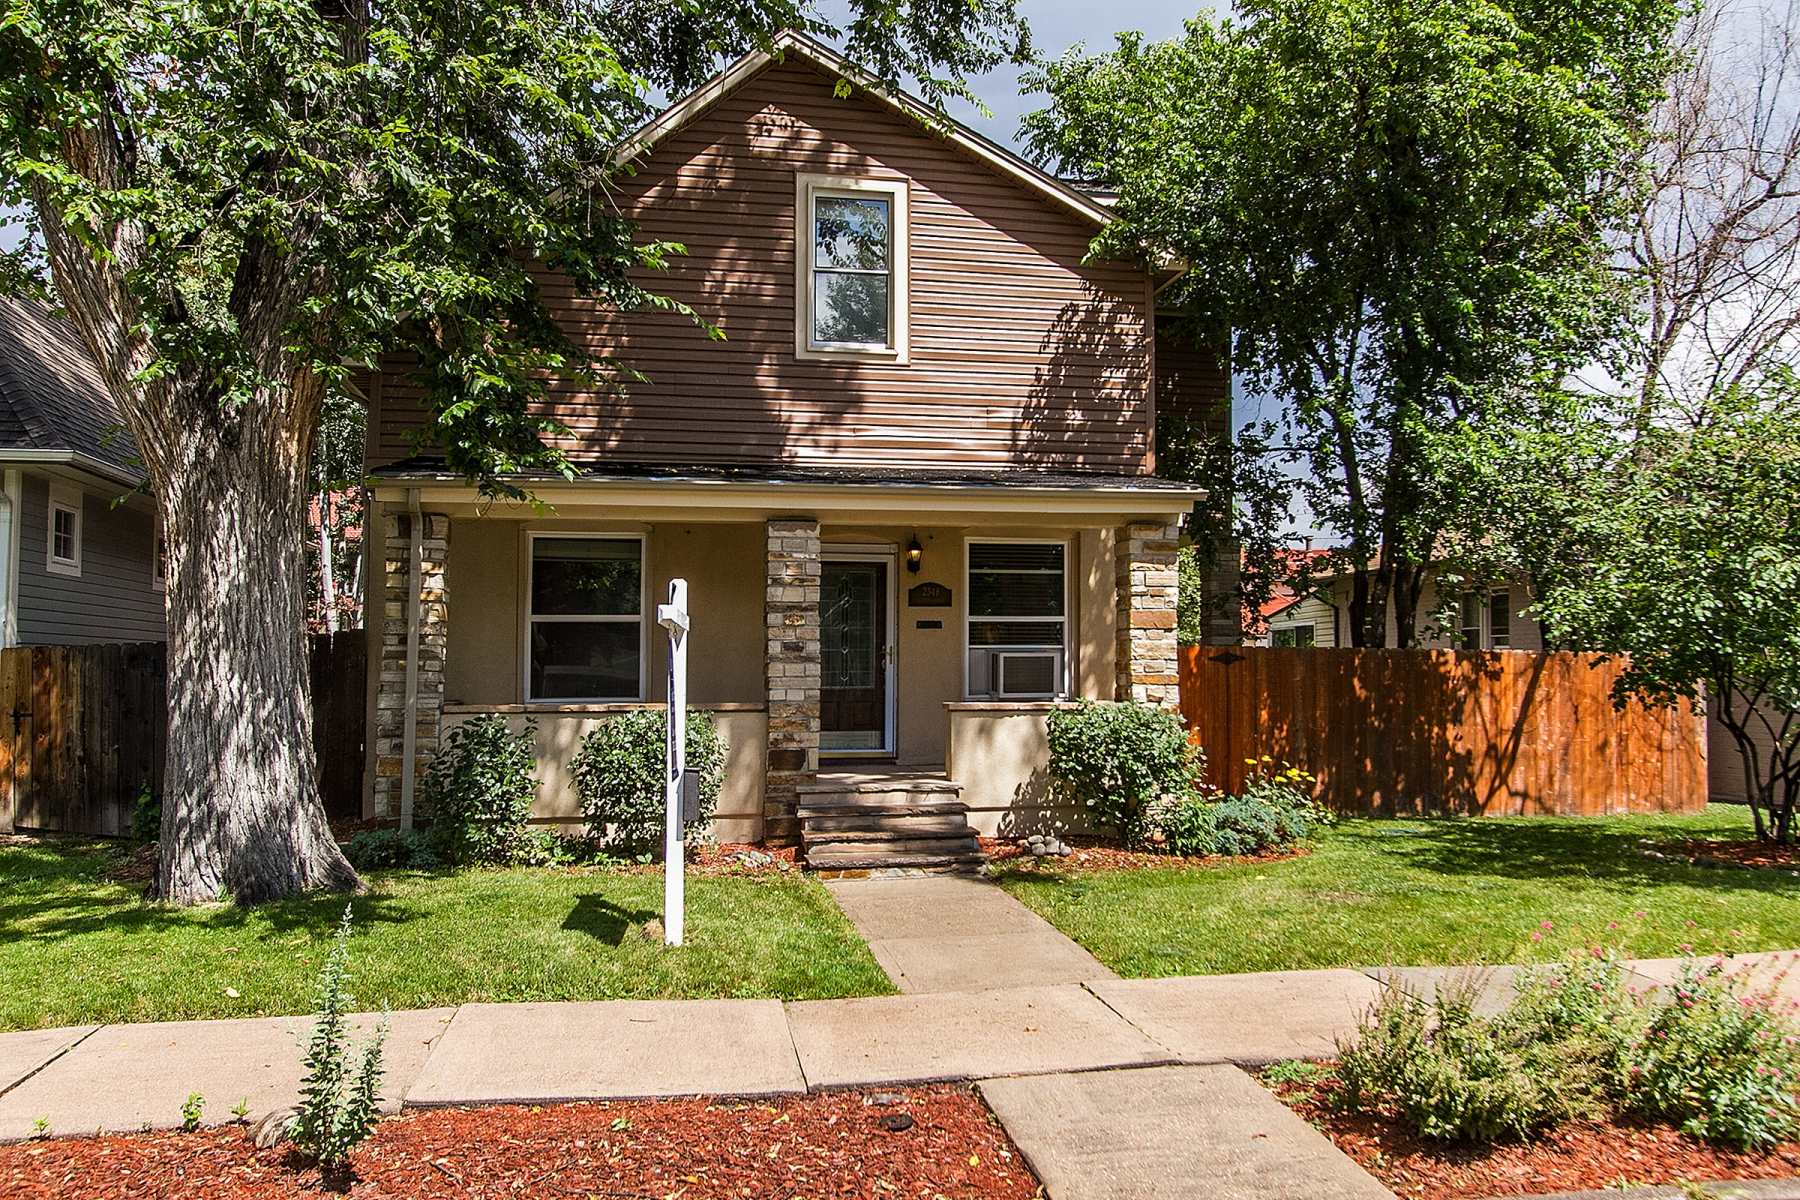 Single Family Home for Sale at Beautiful Sloans Lake Home 2348 Quitman Street Denver, Colorado 80212 United States